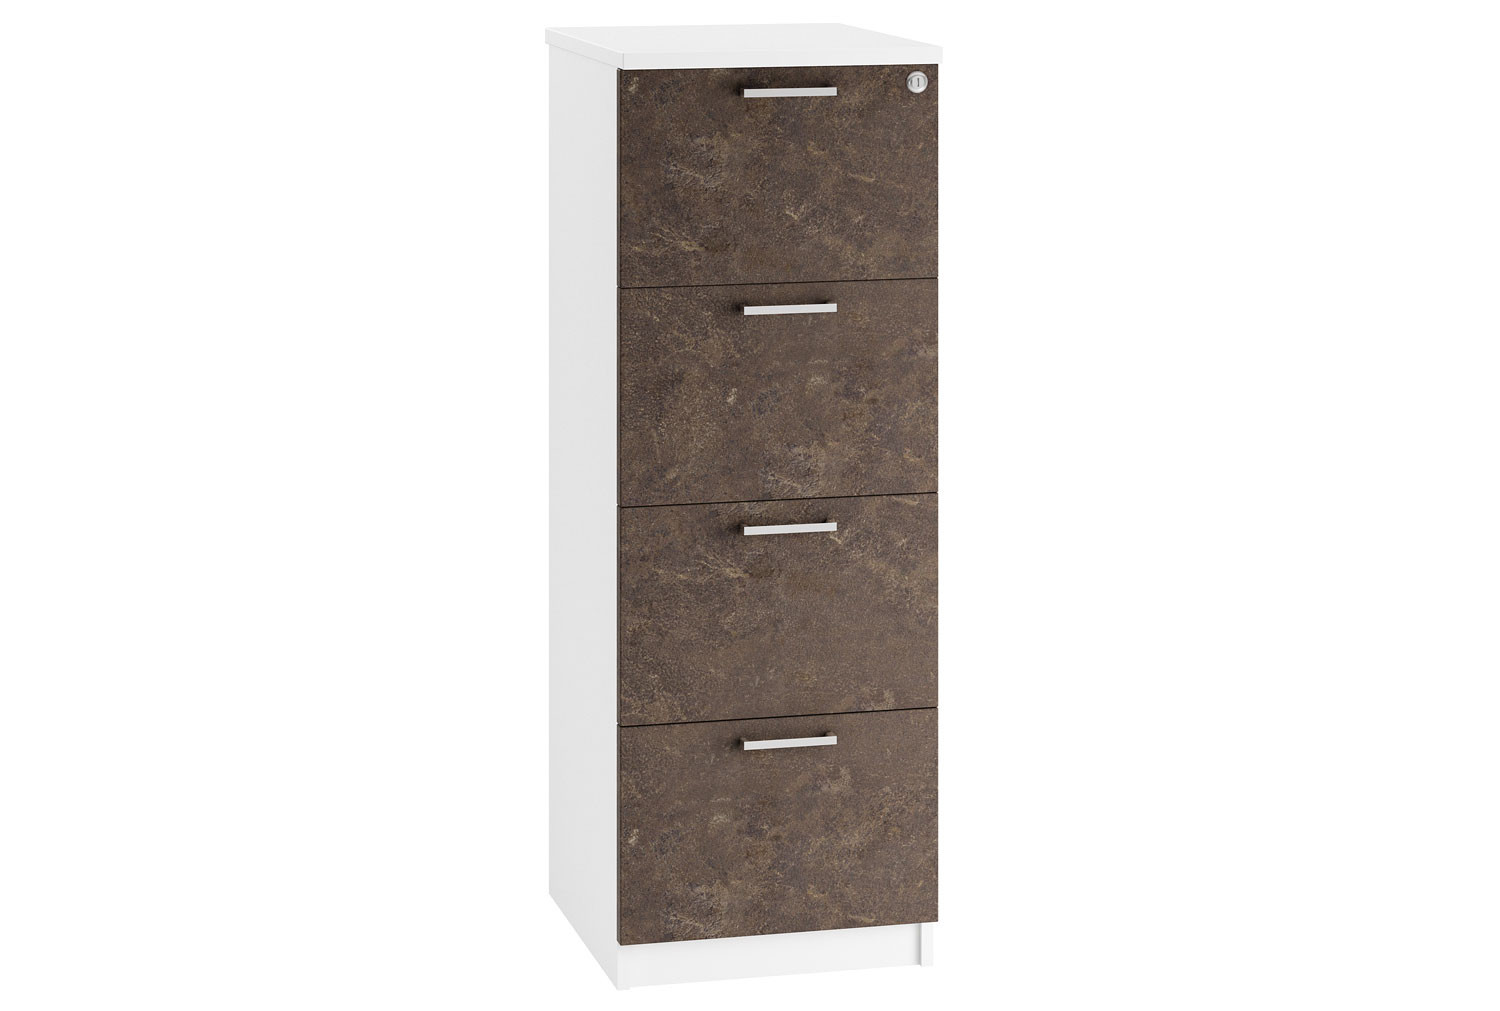 Next-Day Delgado 4 Drawer Filing Cabinet (Pitted Steel)